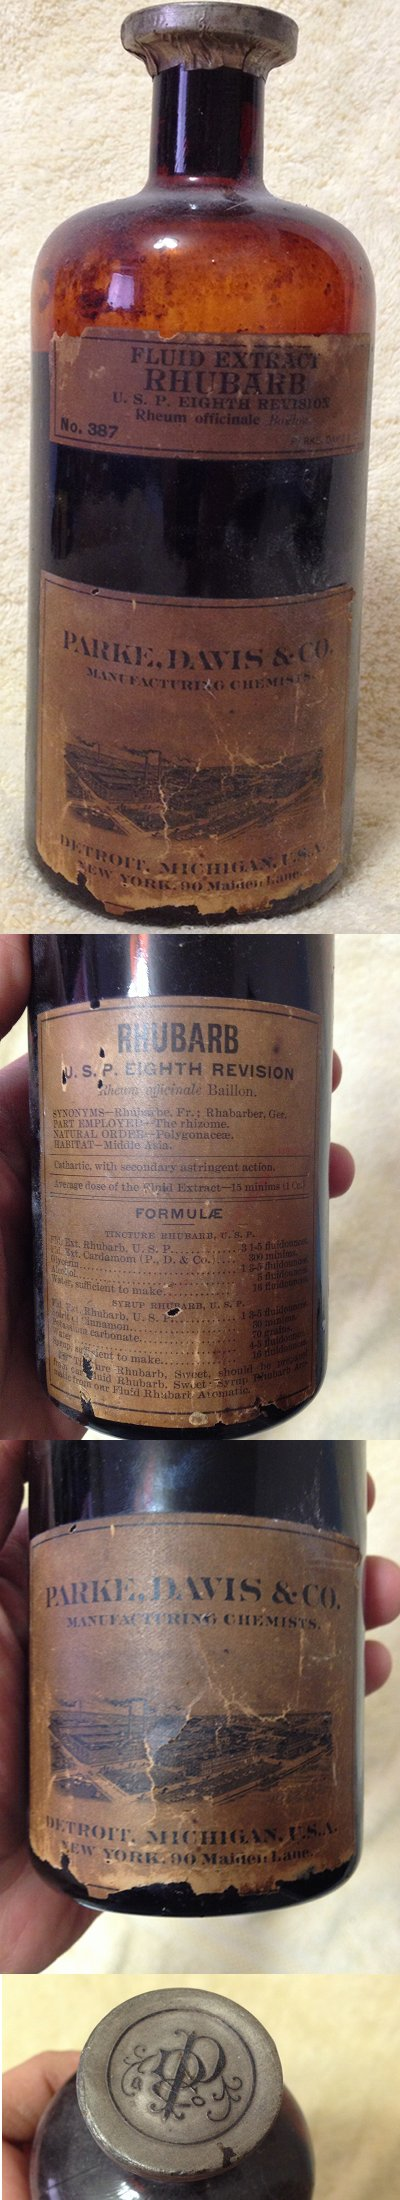 Absolute ethyl alcohol bottle vintage chemical bottle science lab - Very Old Medicine Bottle Of Rhubarb Extract From Parke Davis Still Has Its Contents